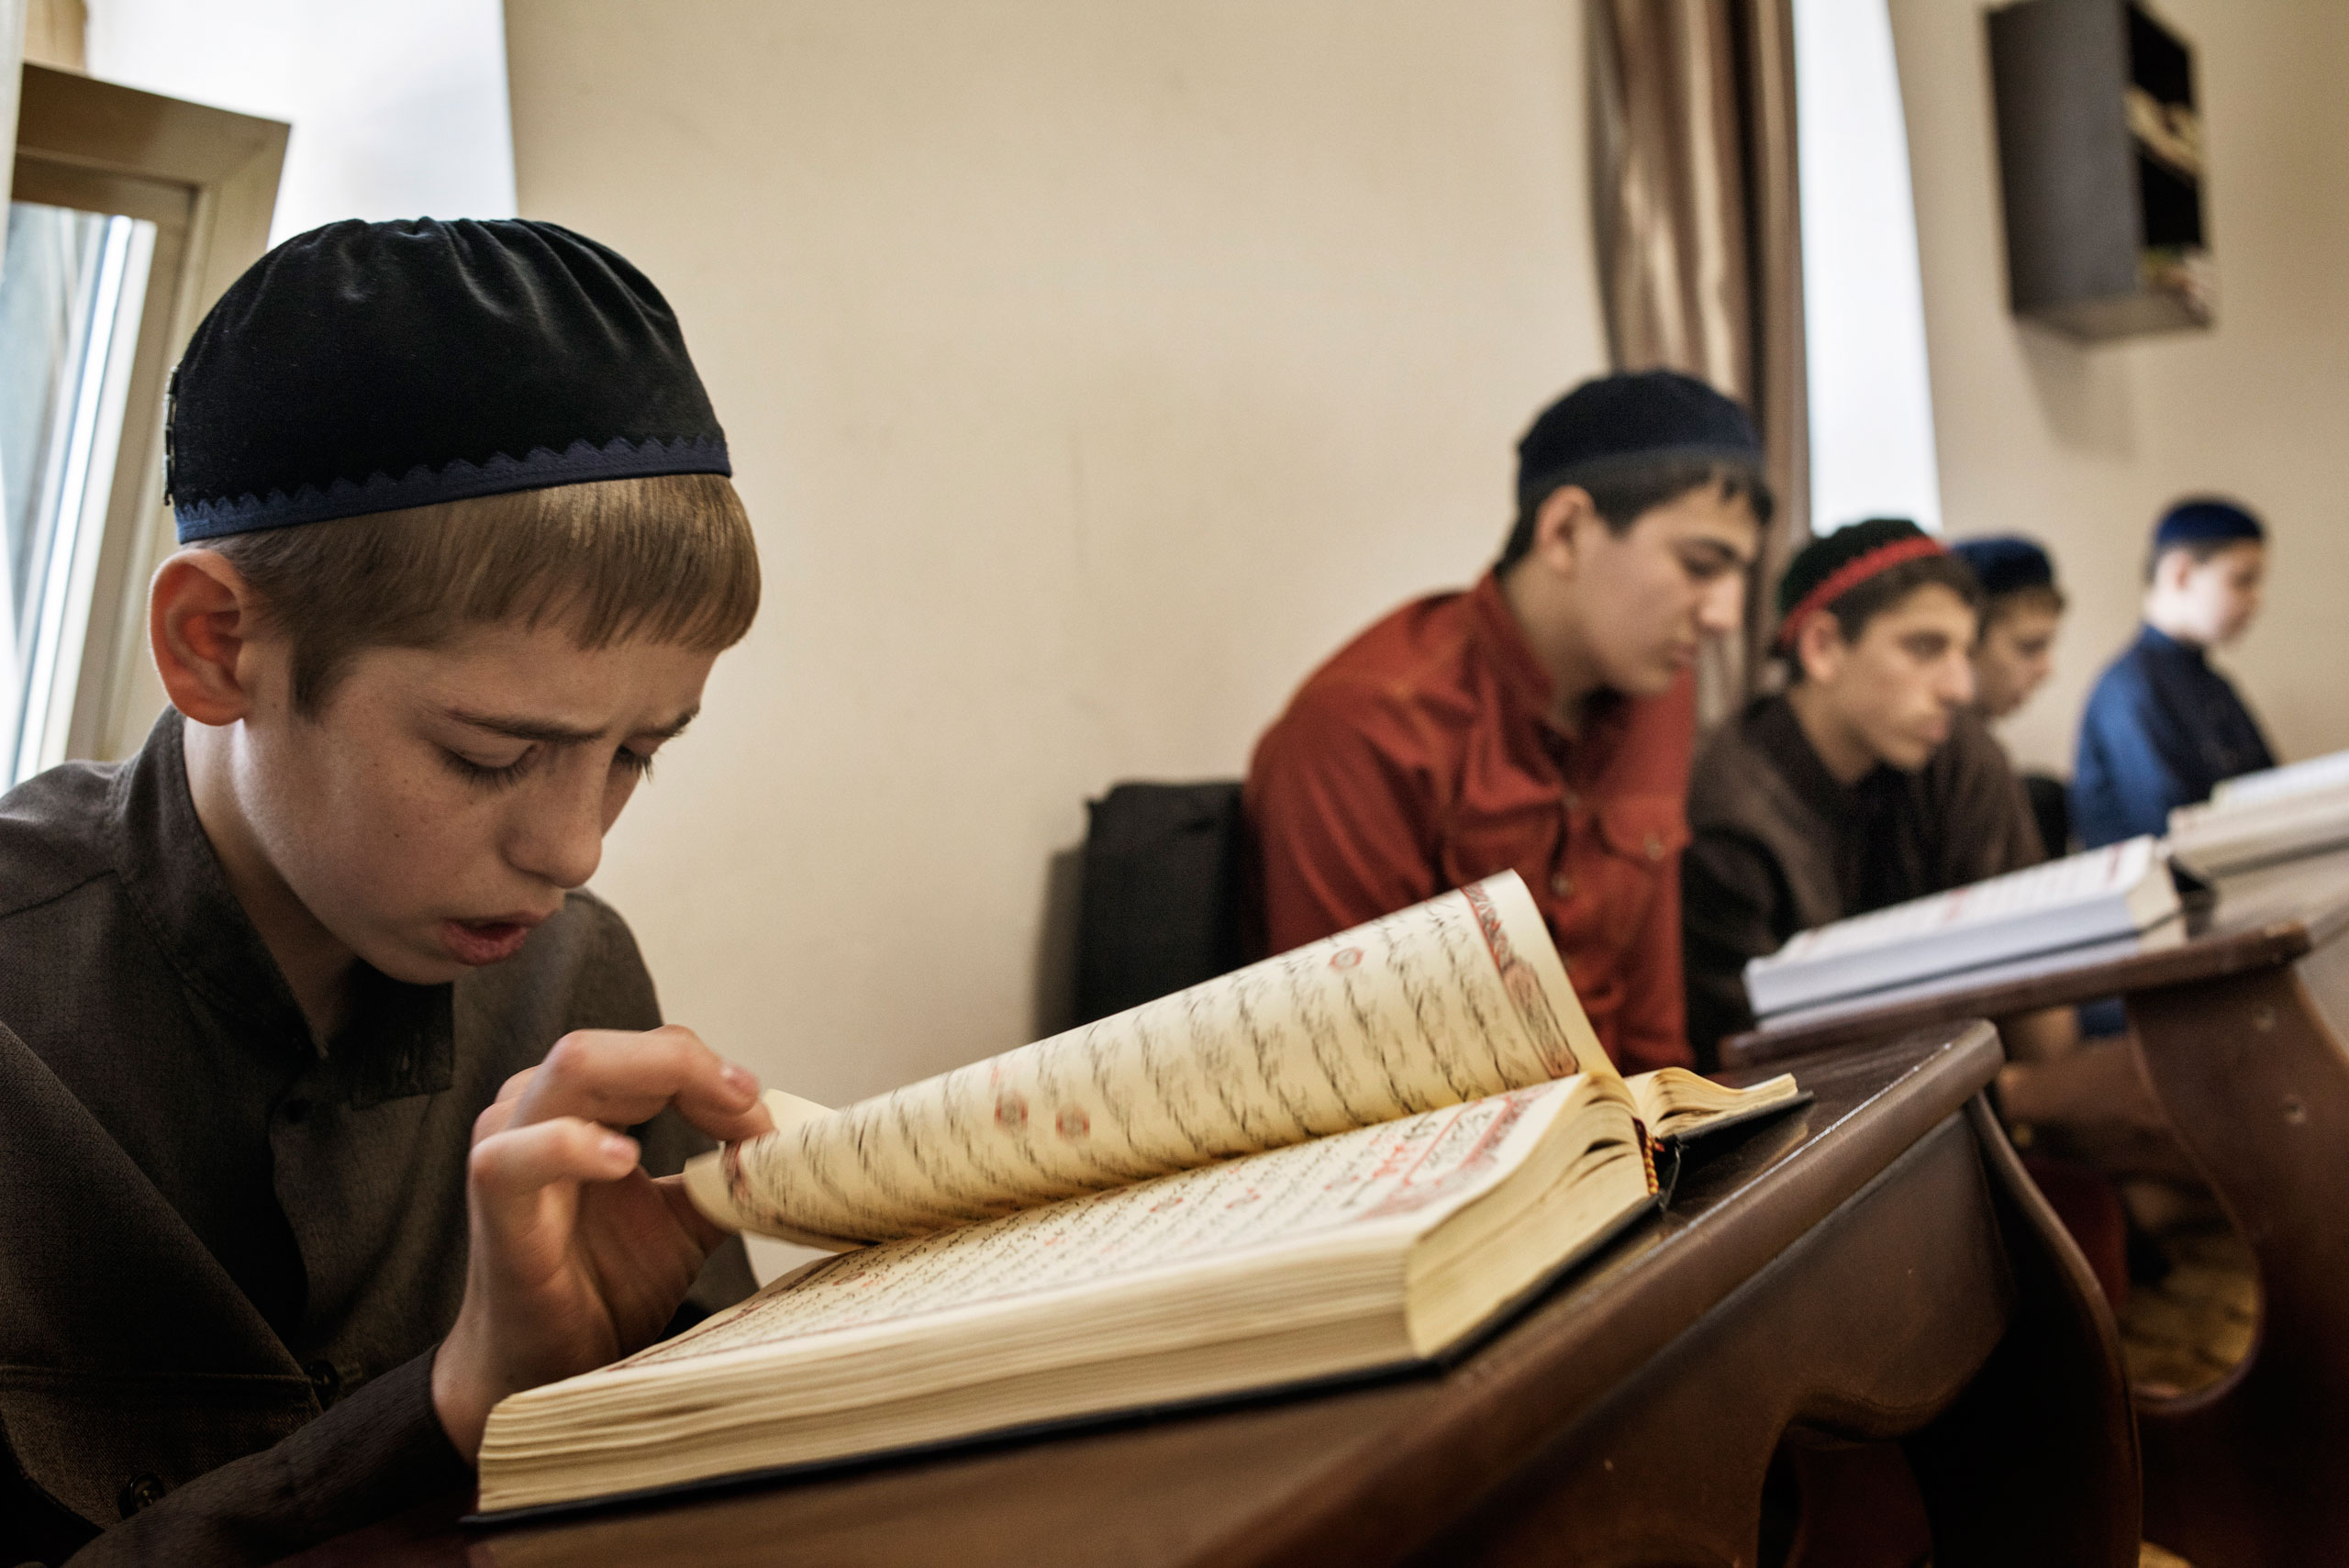 Boys study to become hafiz, or reciters of the Koran at a boarding school in Grozny, Chechnya. Reared                               on principles of fealty and self-sacrifice, many graduates are recruited to Kadyrov's security forces, April 2015.